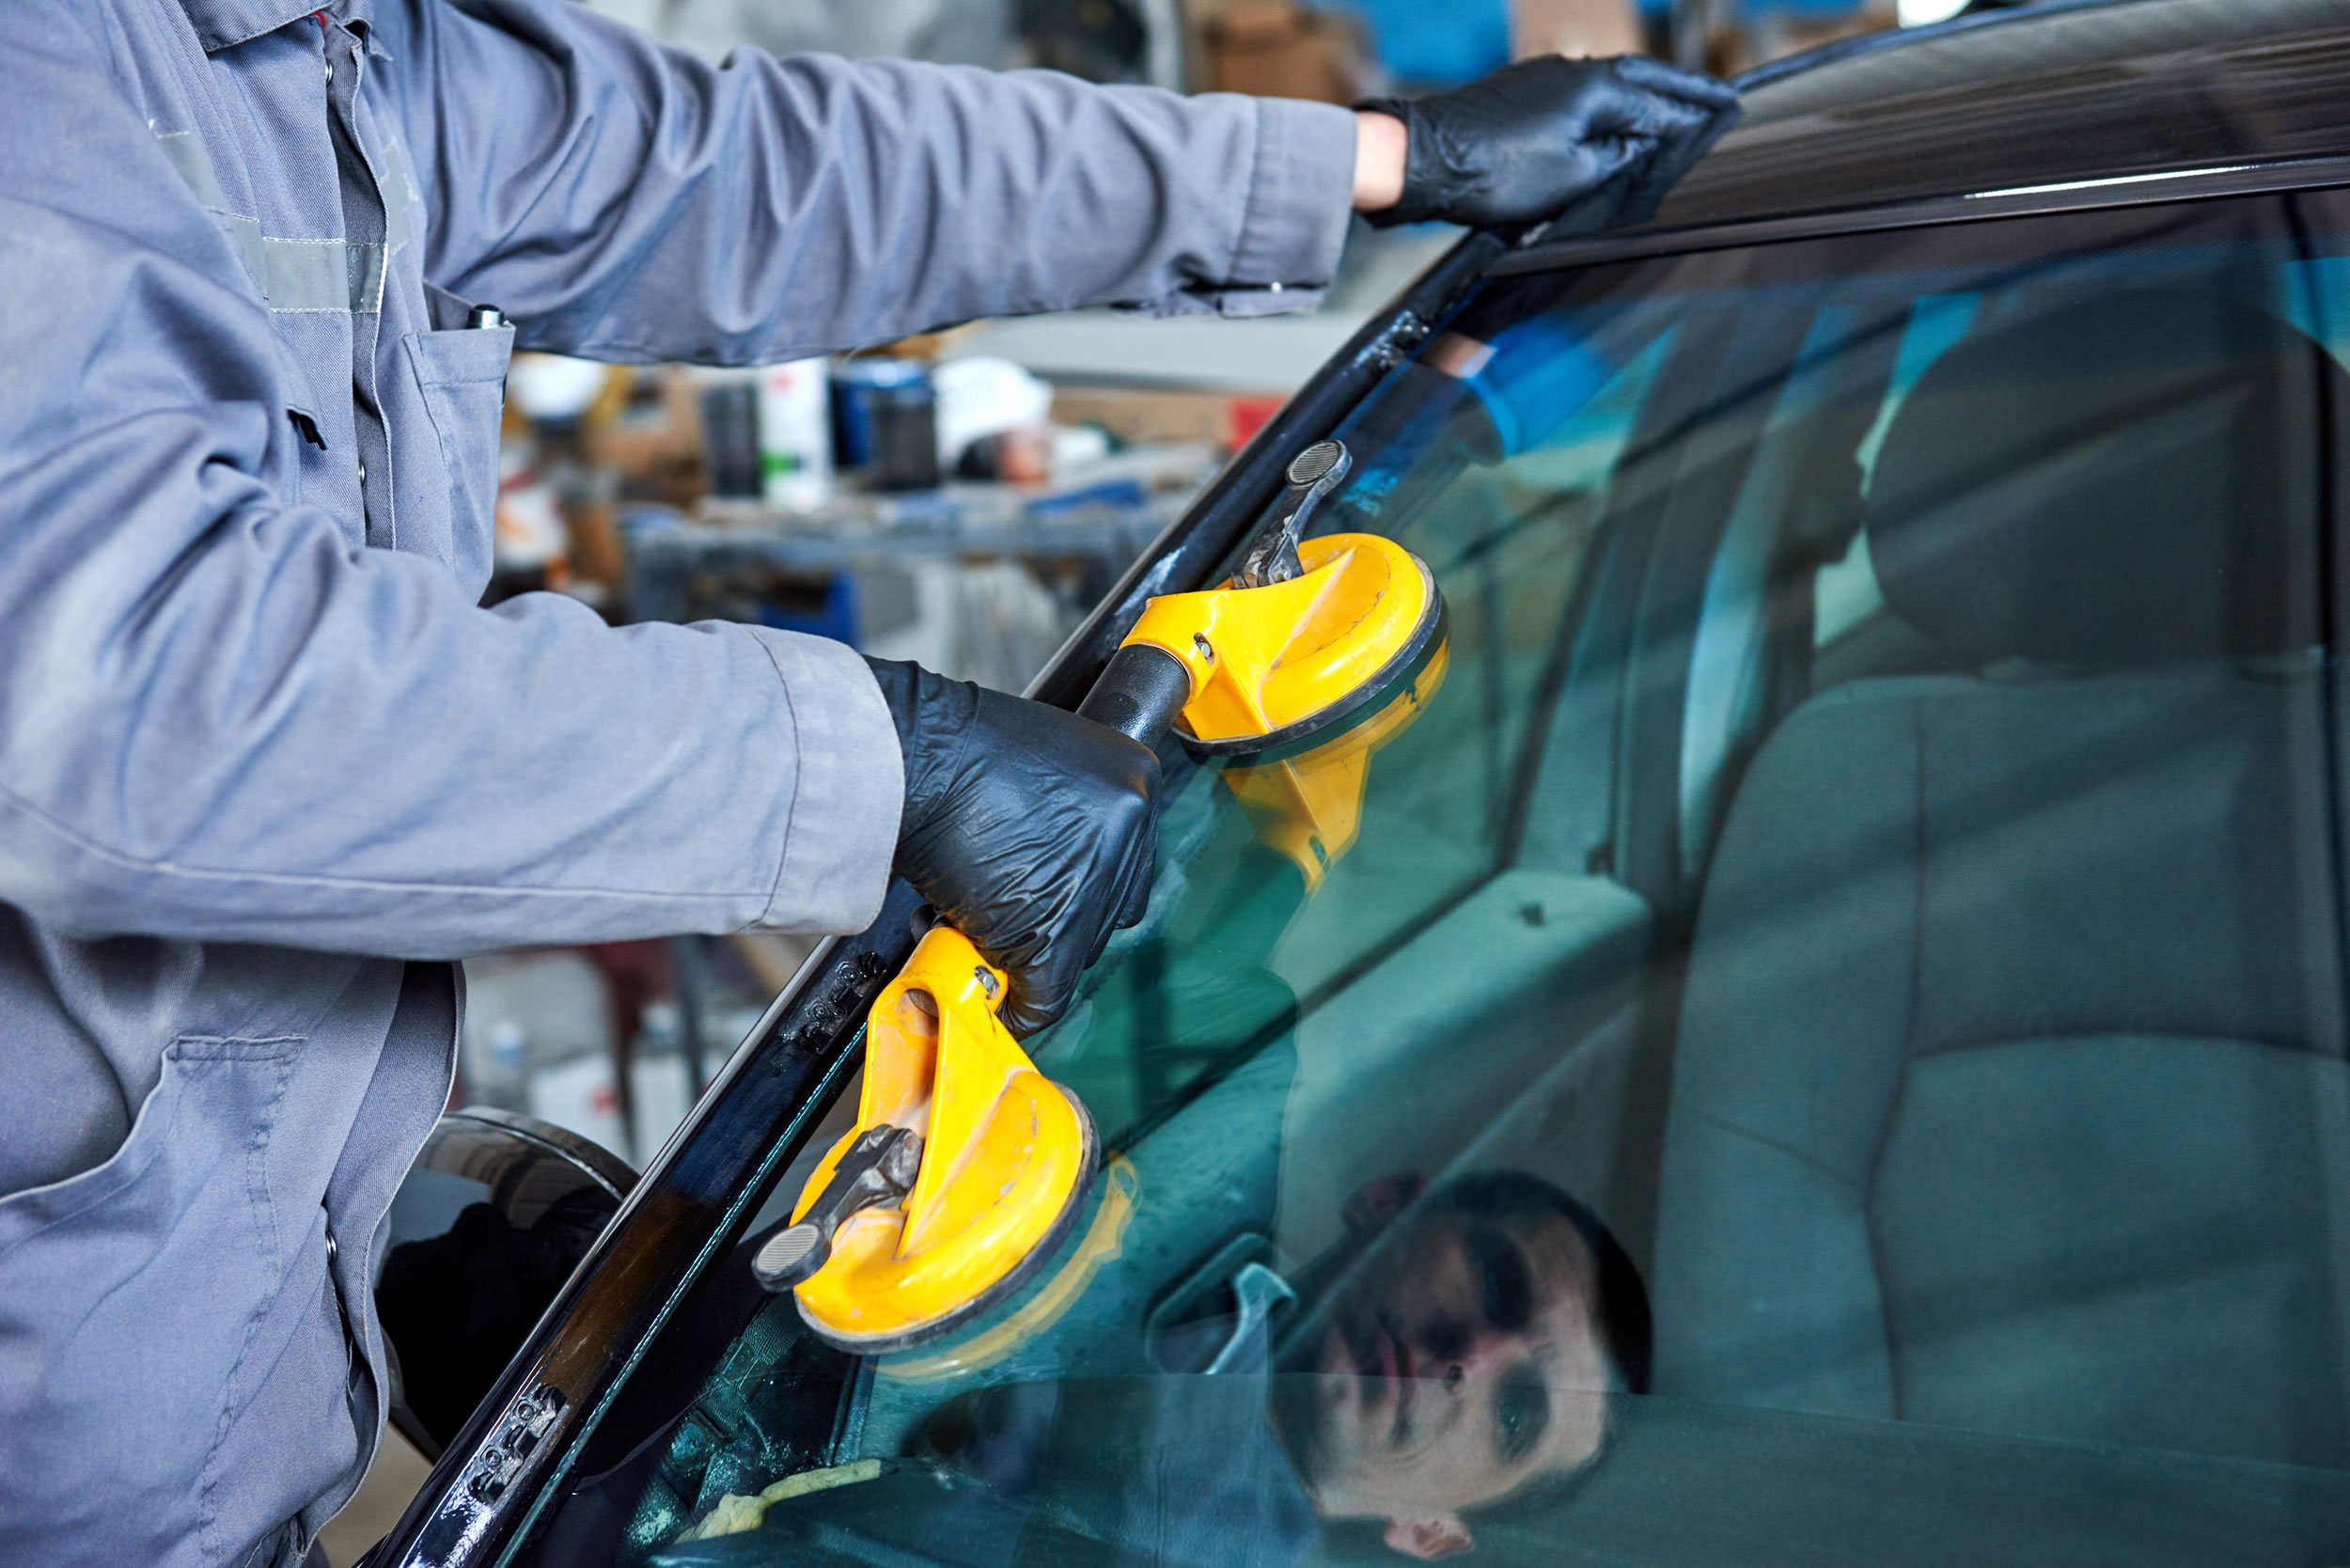 Windshield Replacement Quote Online Idaho Falls Windshield Rescue  Expert Windshield Repair